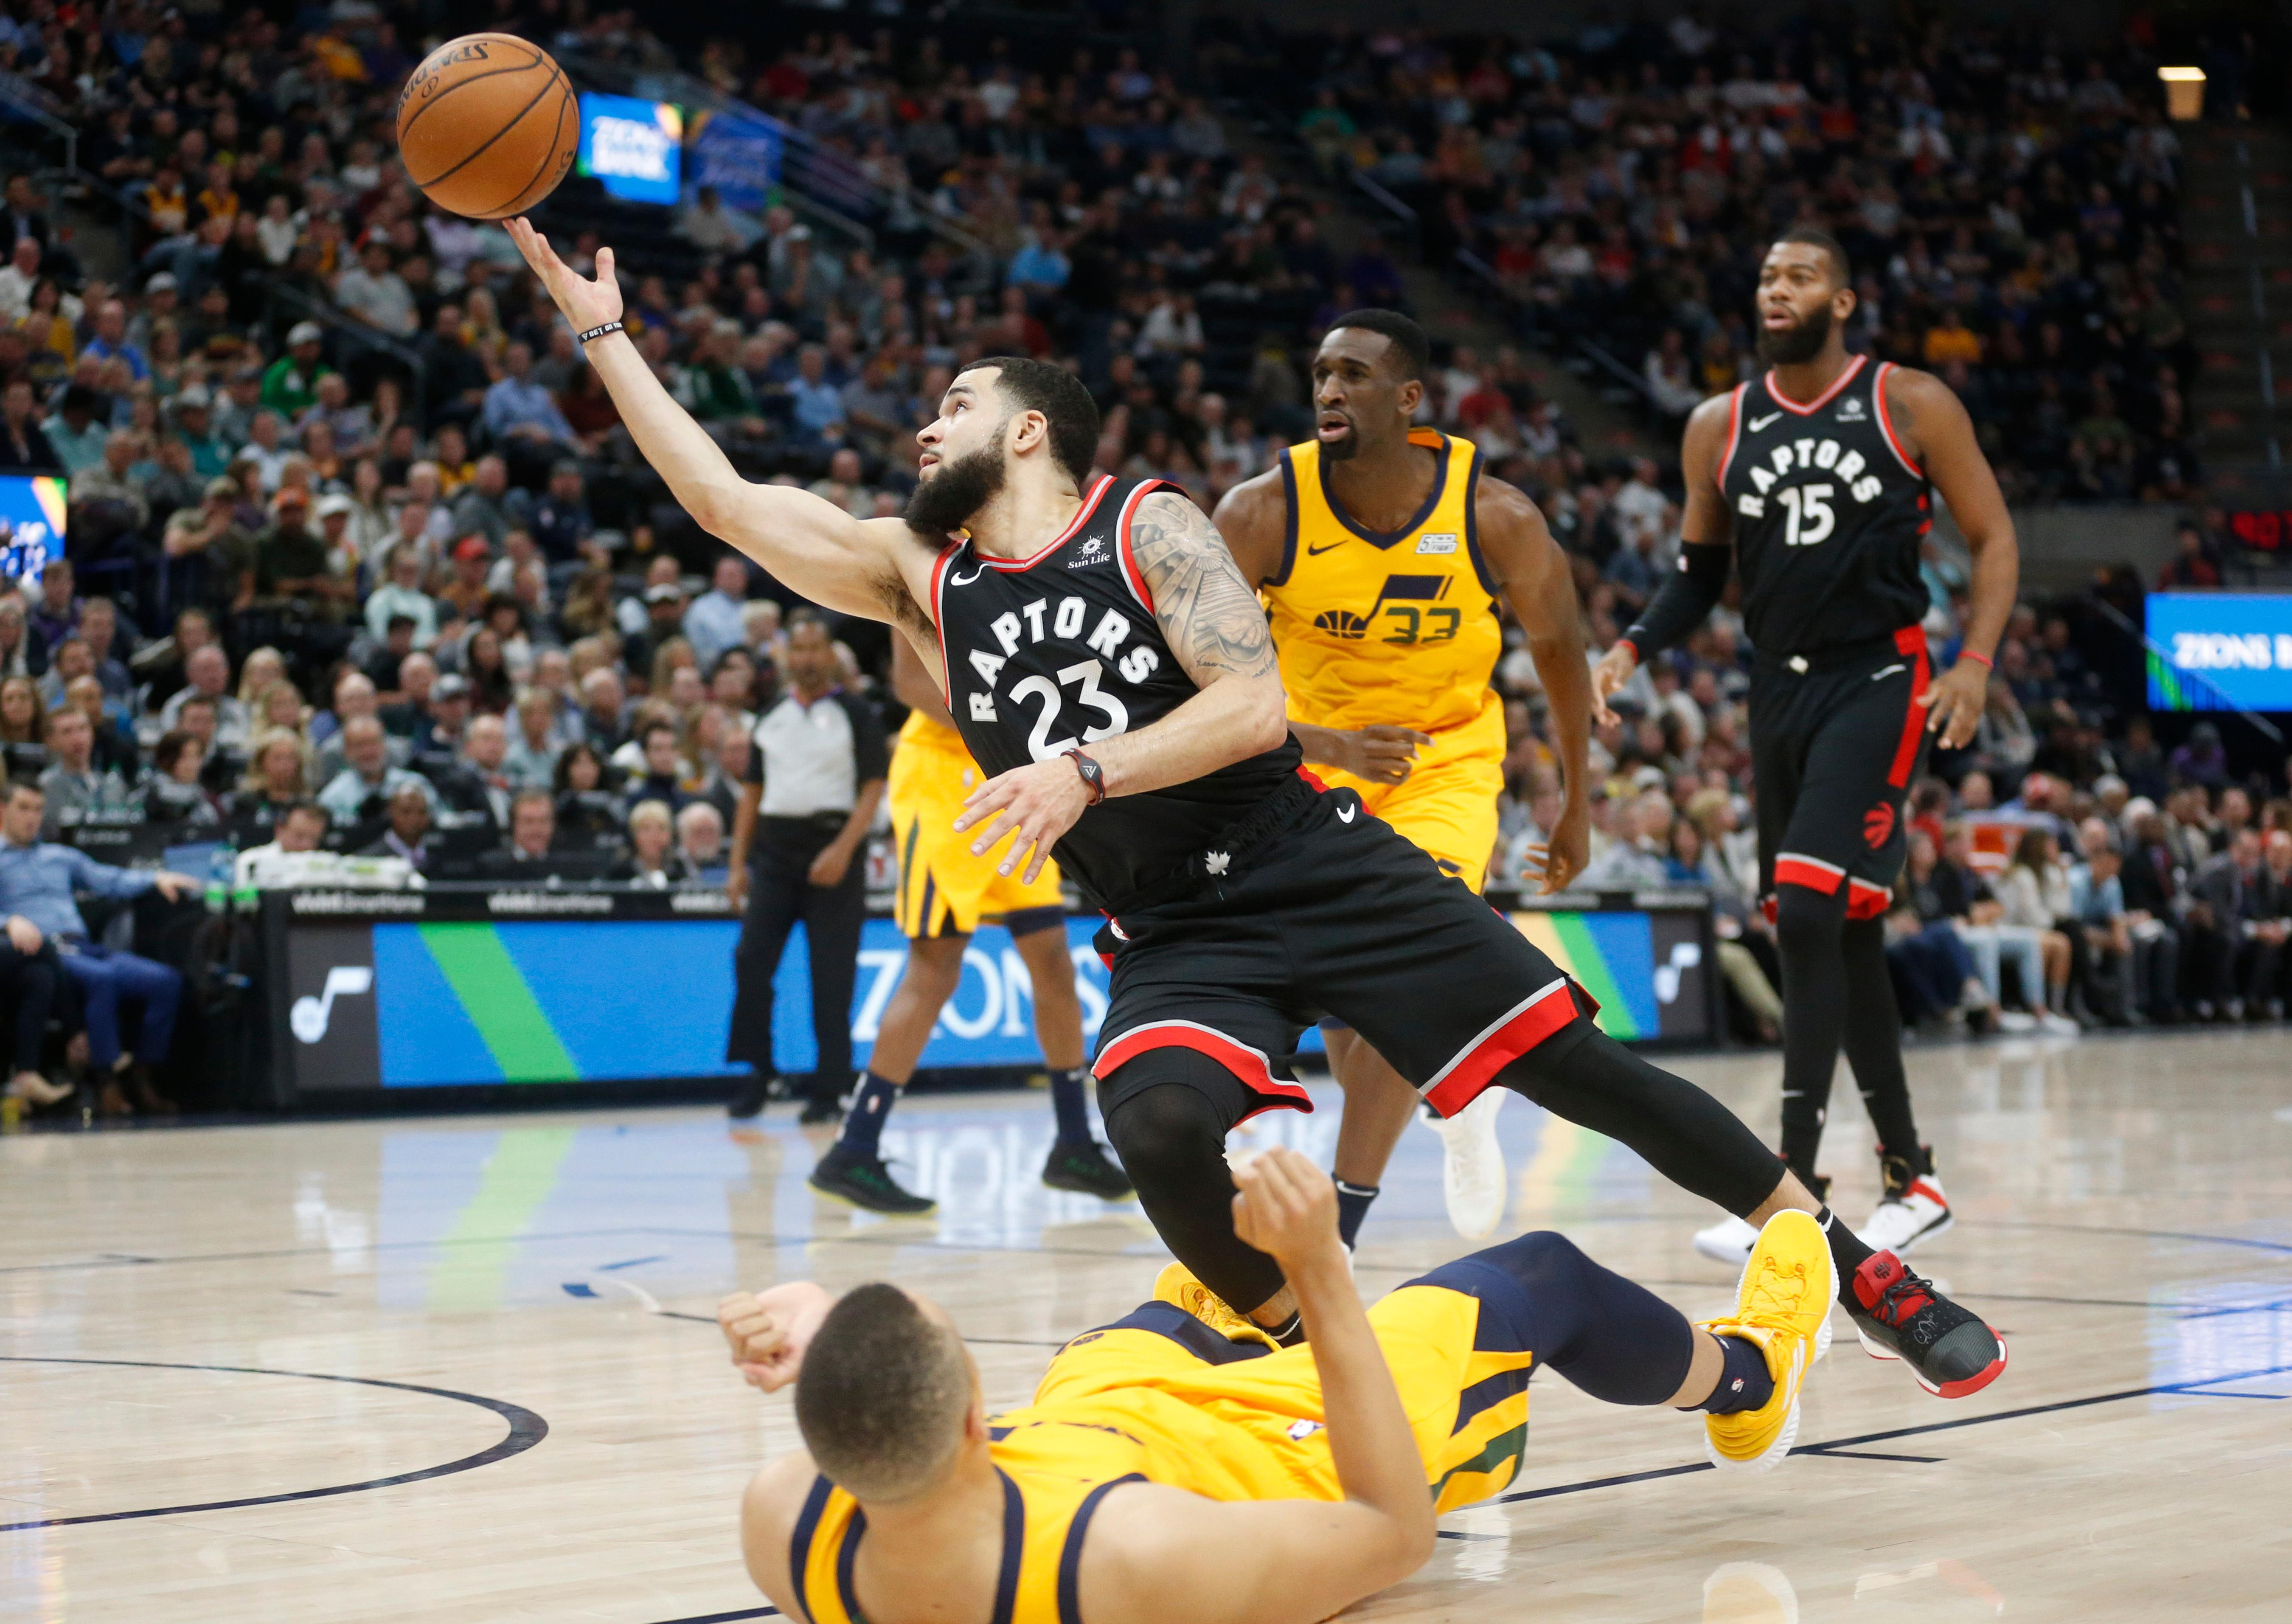 Toronto Raptors guard Fred VanVleet (23) lays the ball up as Utah Jazz guard Dante Exum, foreground, falls as he defends in the second half during an NBA basketball game Monday, Nov. 5, 2018, in Salt Lake City. (AP Photo/Rick Bowmer)